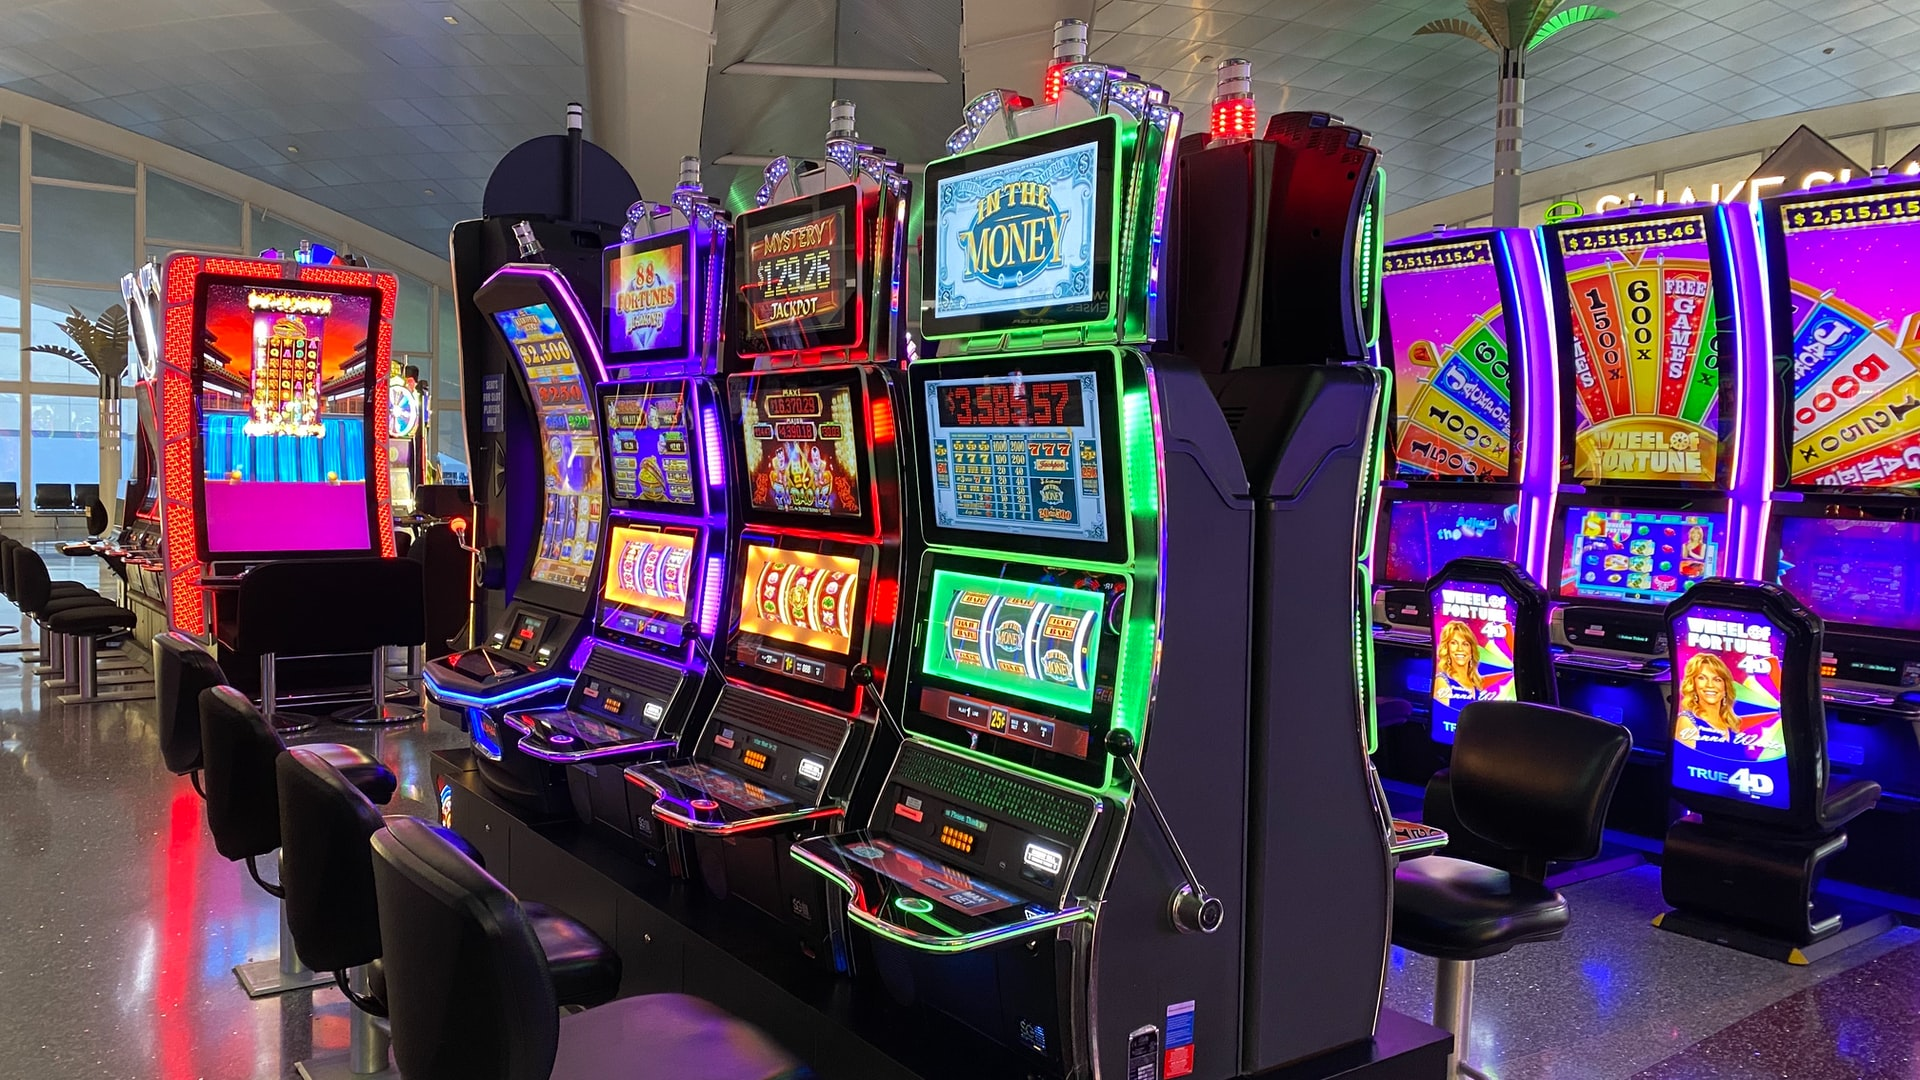 Agent online gambling to offer great fun